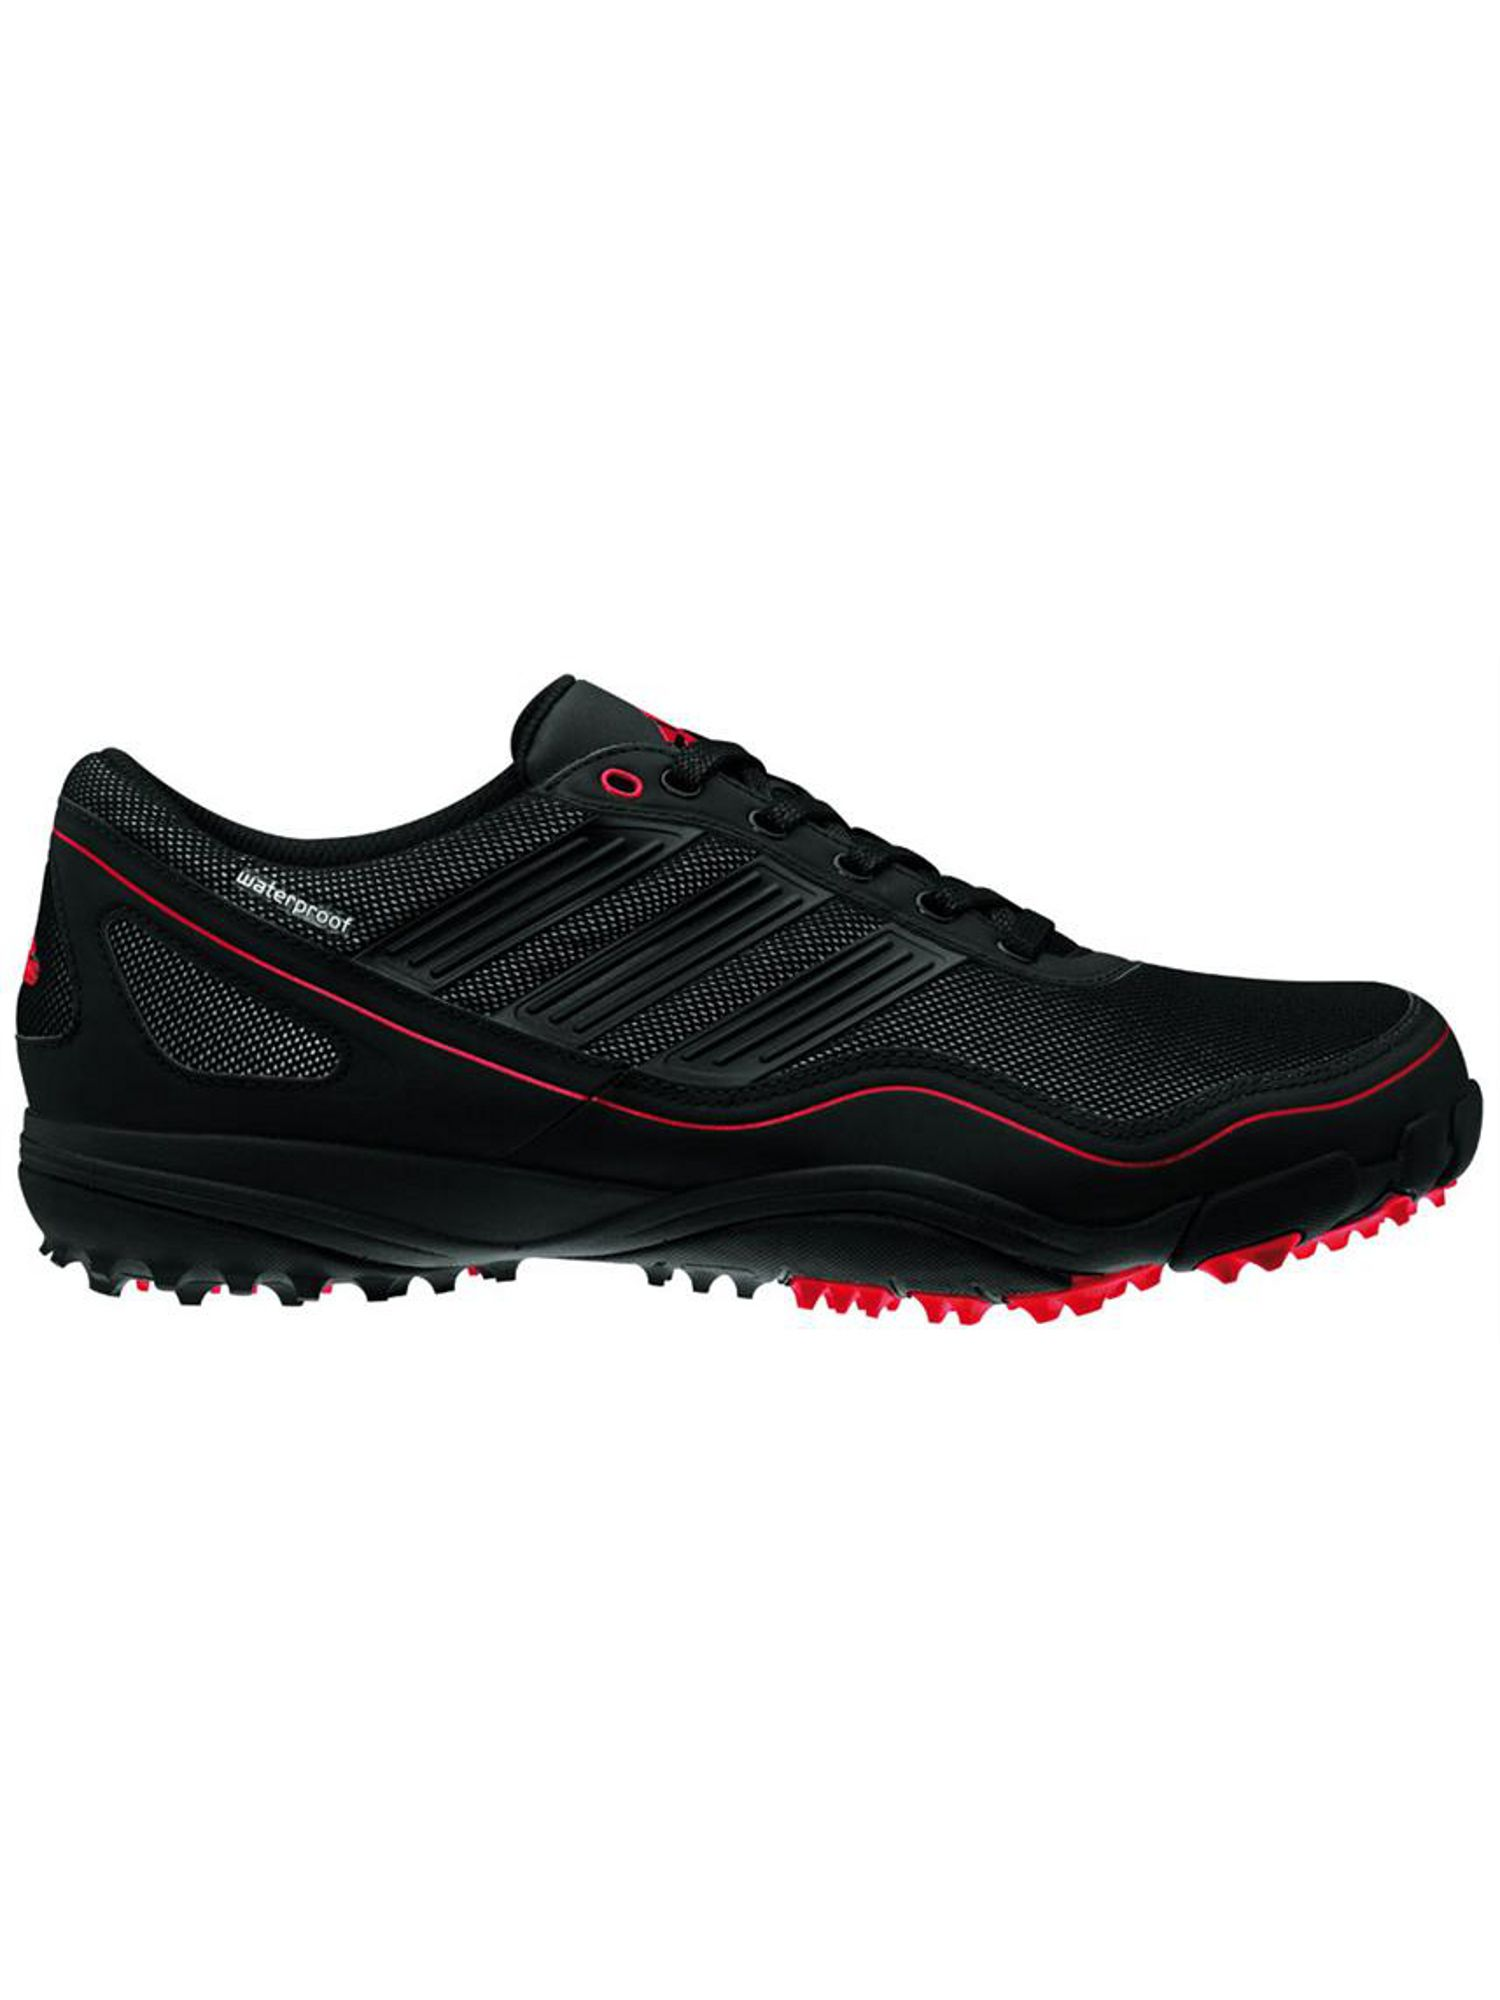 Puremotion golf shoes